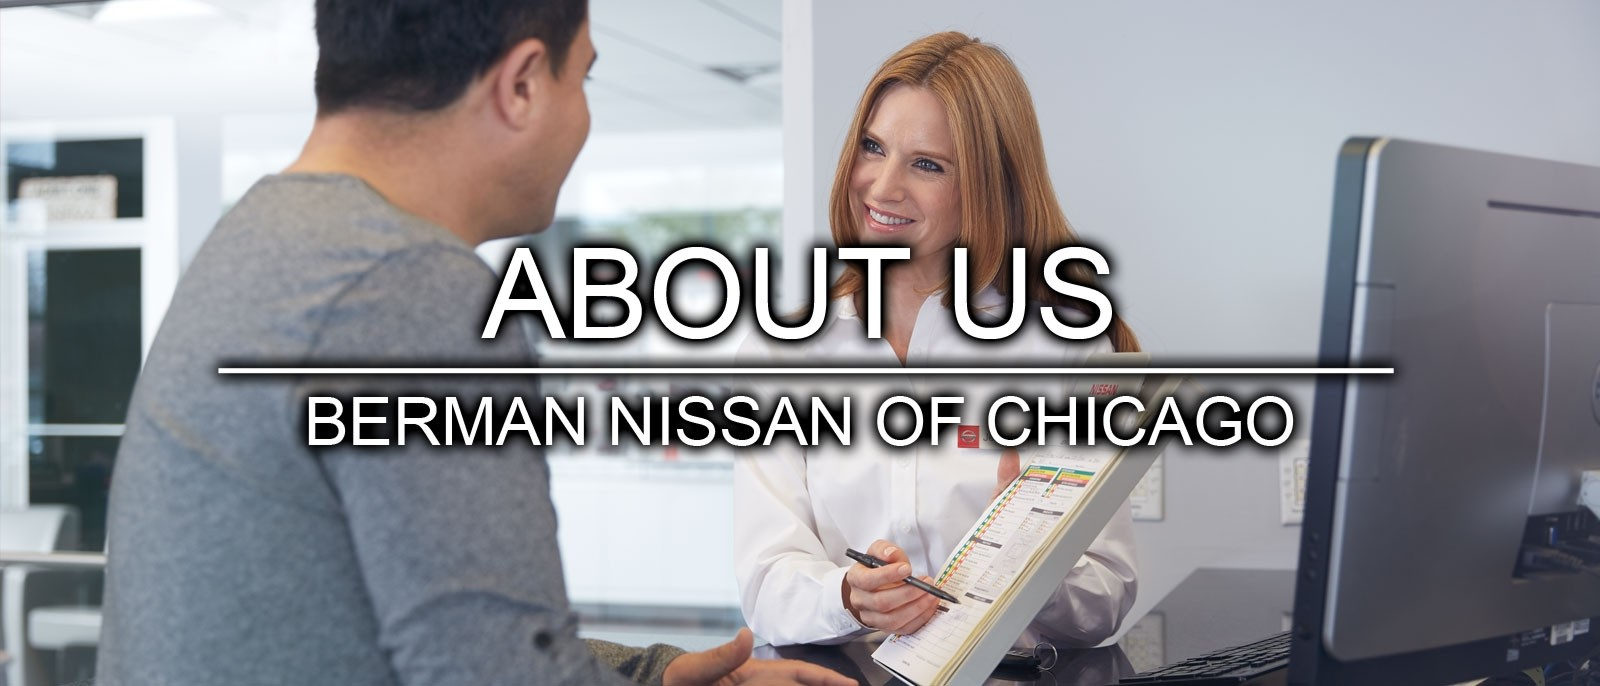 About Berman Nissan of Chicago